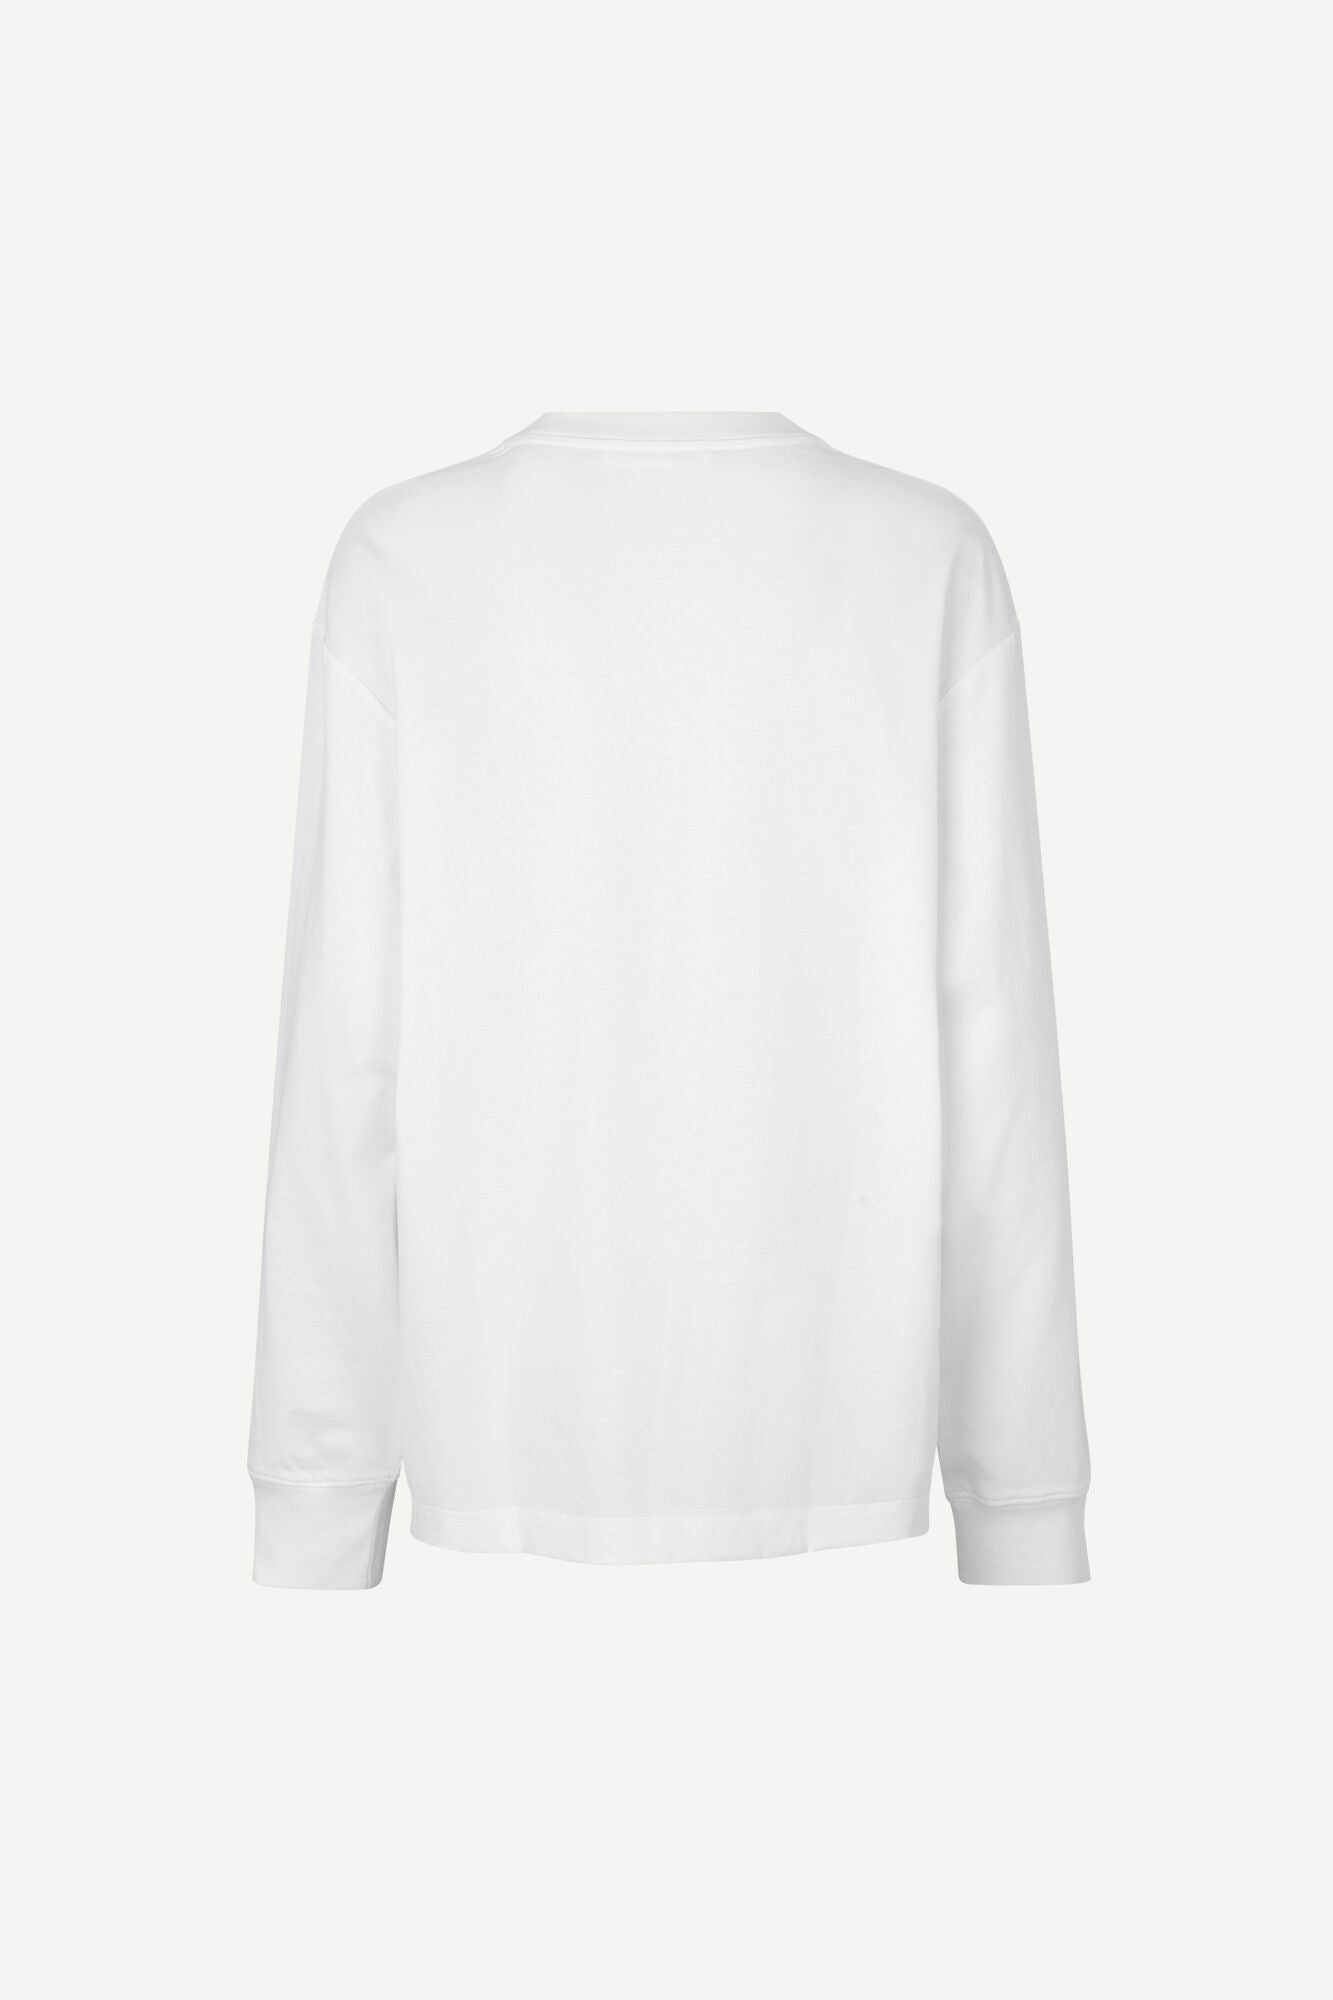 RELAXED FITTING LONGSLEEVE IN WHITE